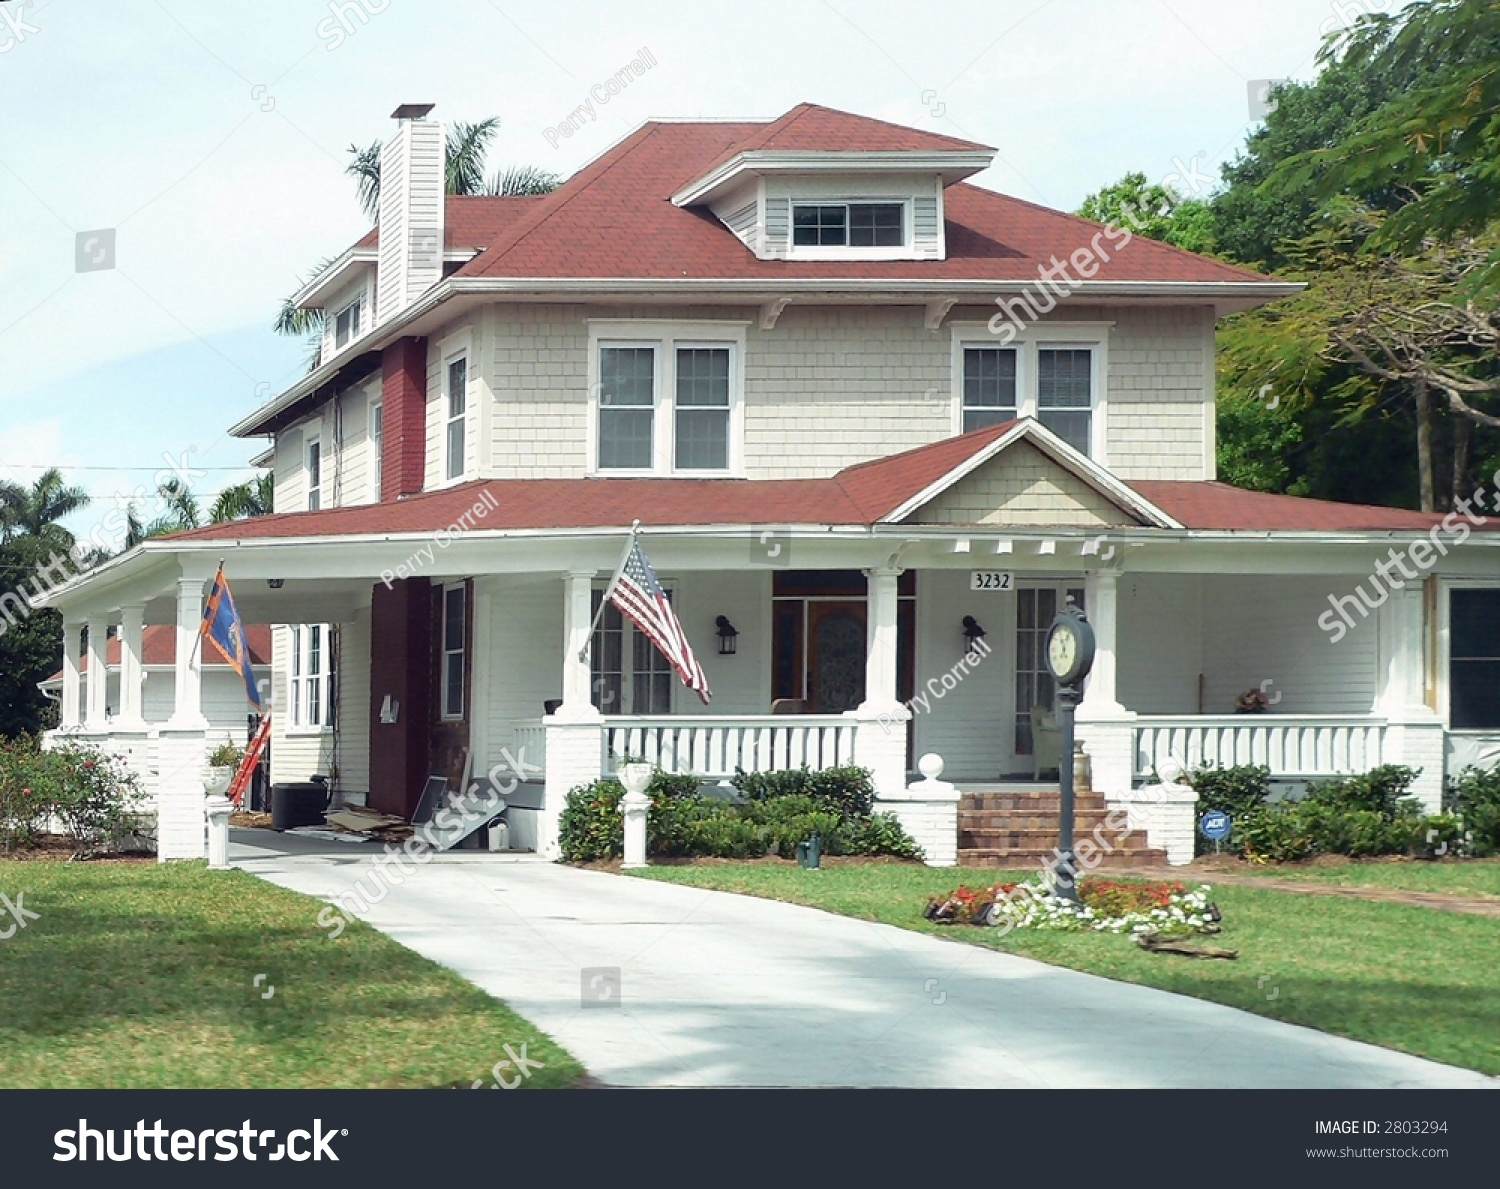 A two story traditional american home with us flag stock for Traditional american home